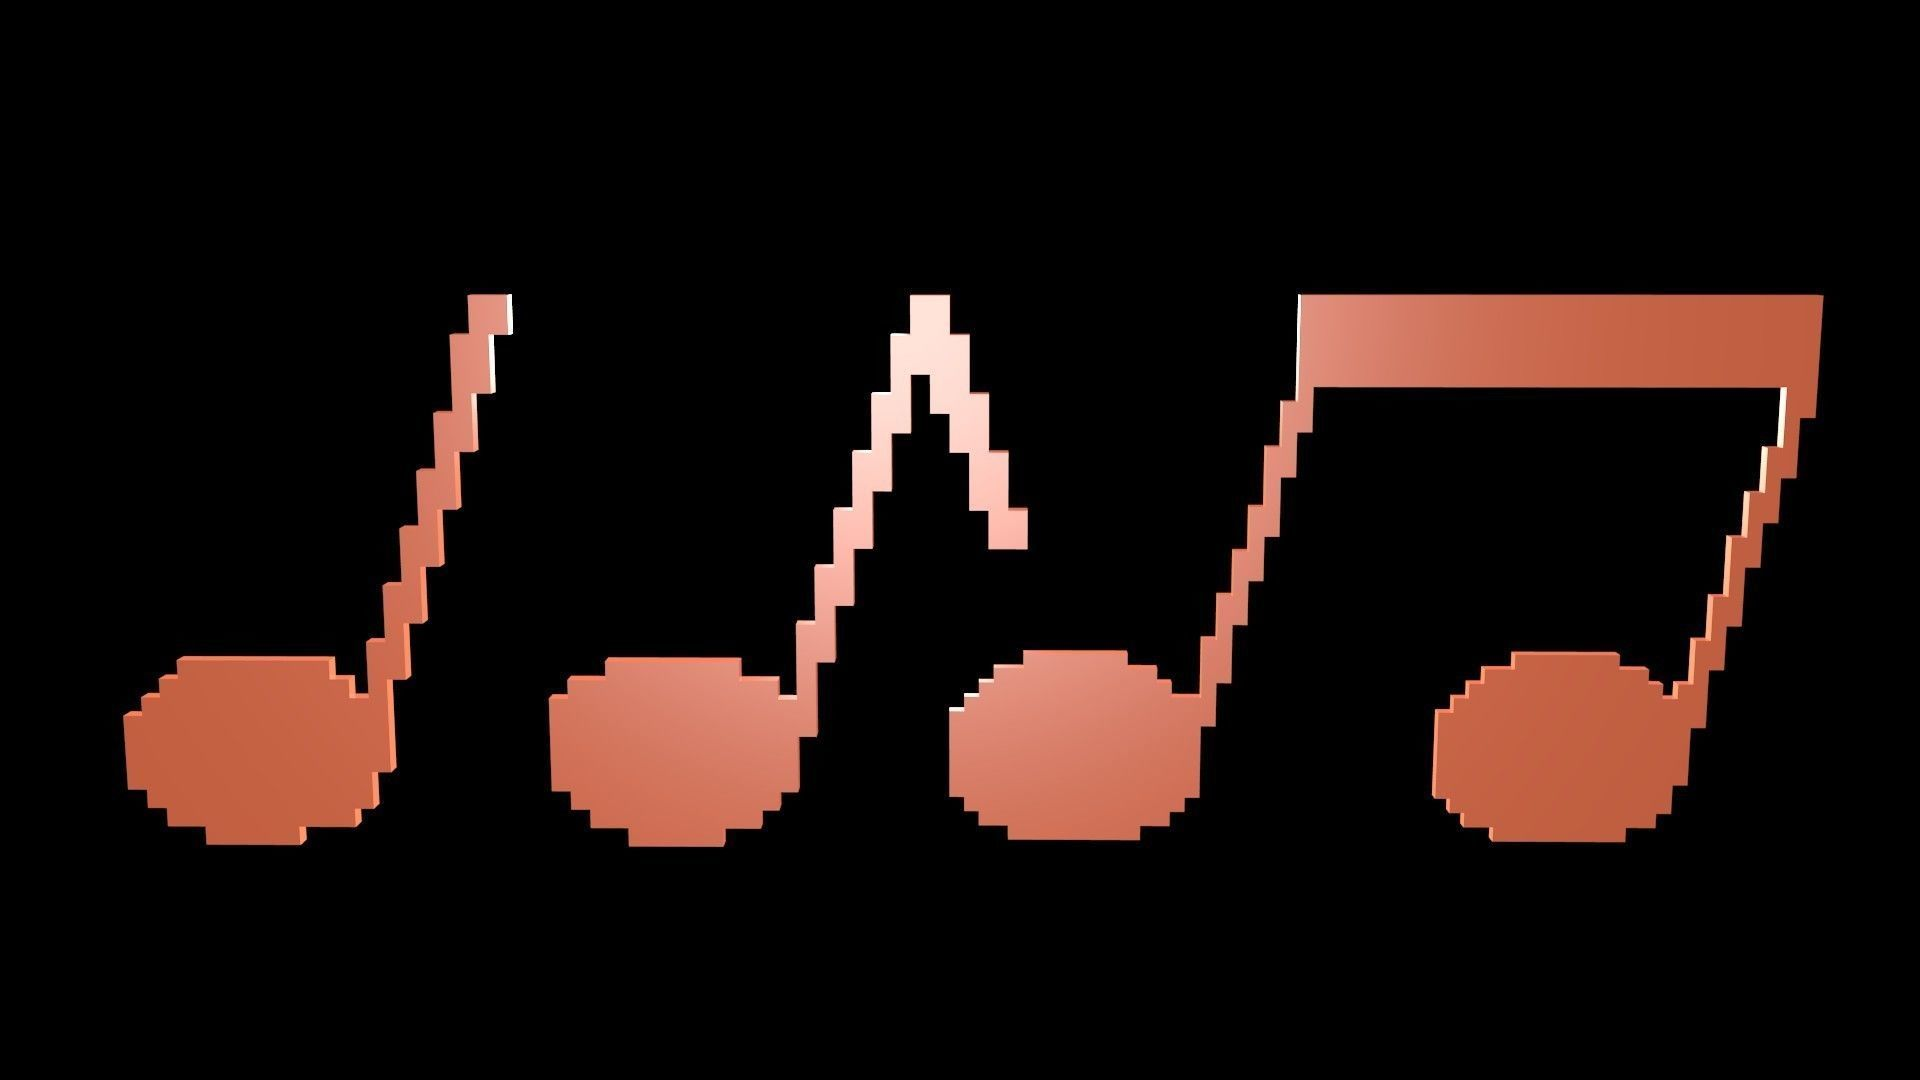 Musical notes voxel